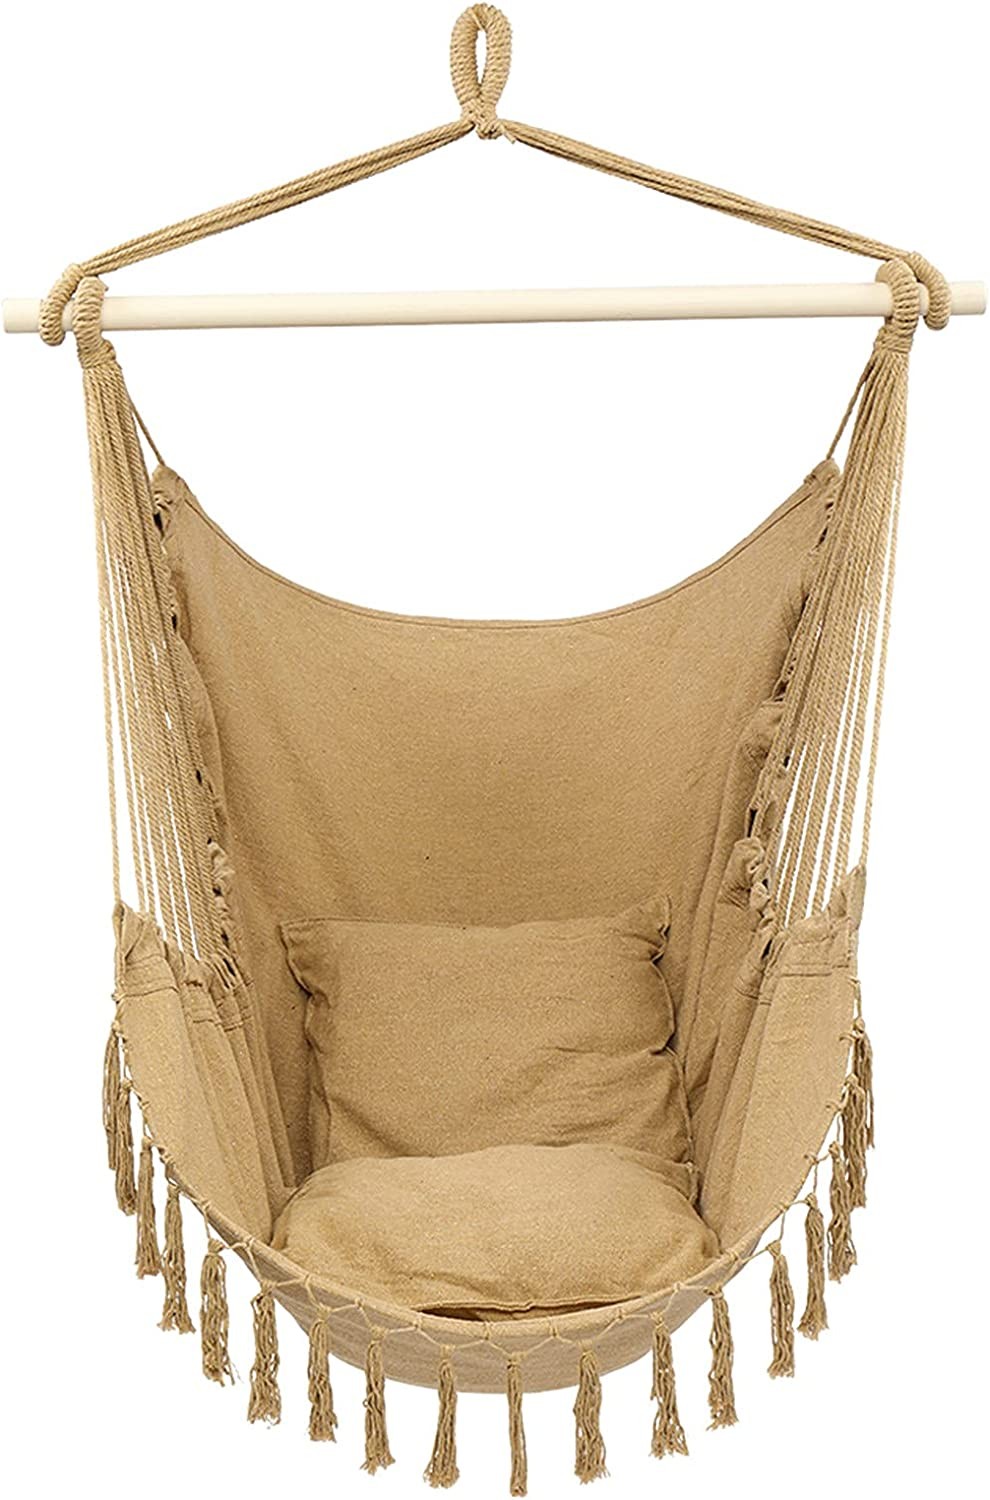 Price reduction Trlec gt4-ly 1.5x1.2m Tassel Plus Max 70% OFF Co Pillow Coffee Chair Hanging